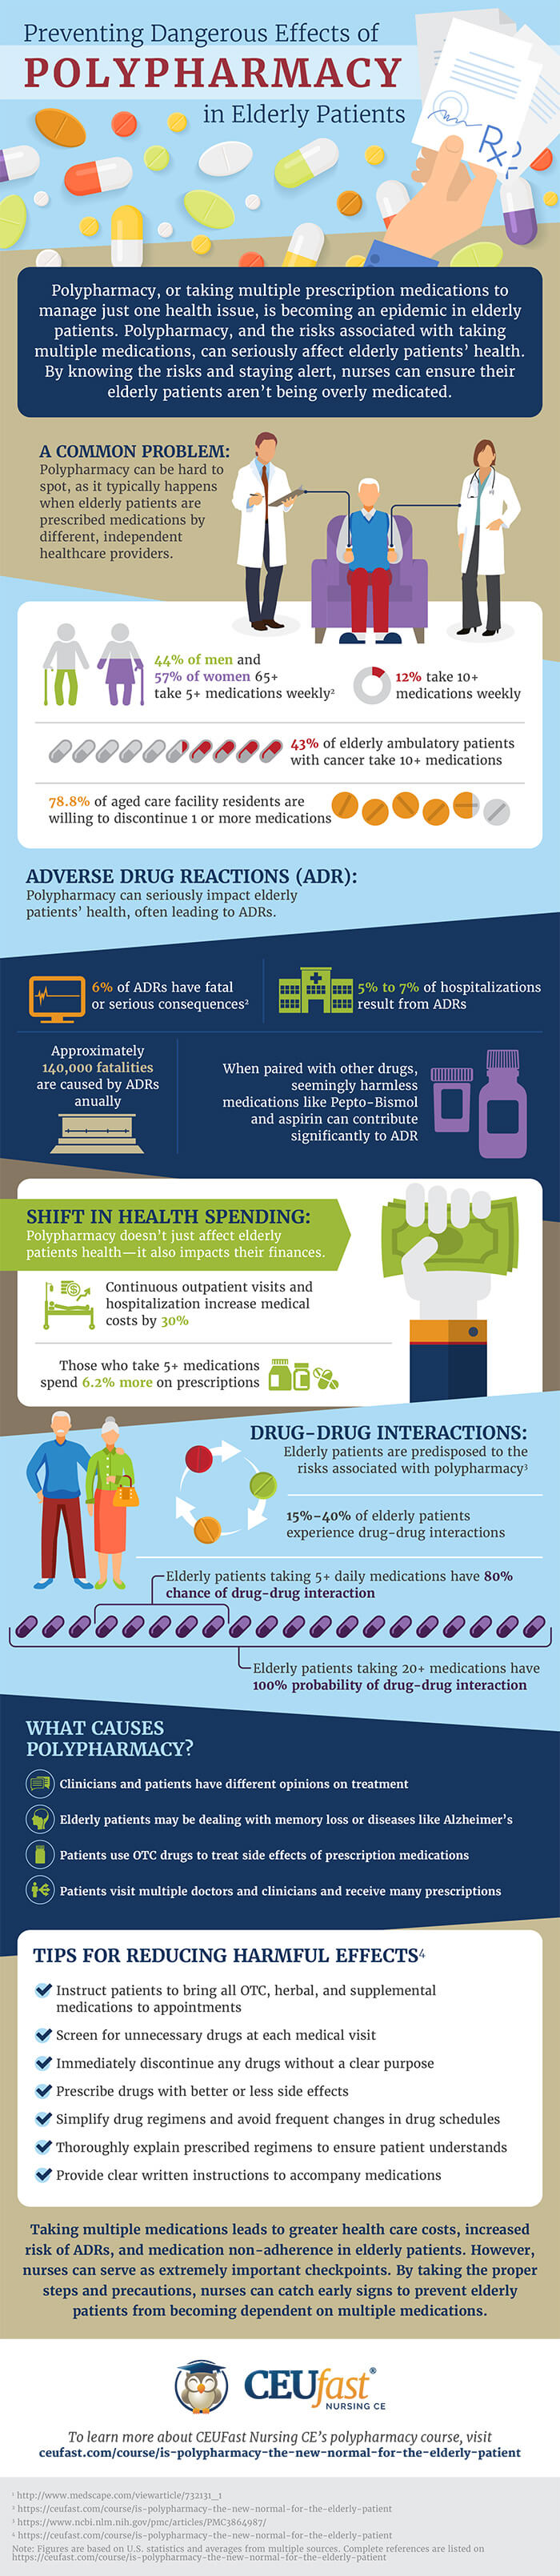 Polypharmacy Info Graphic